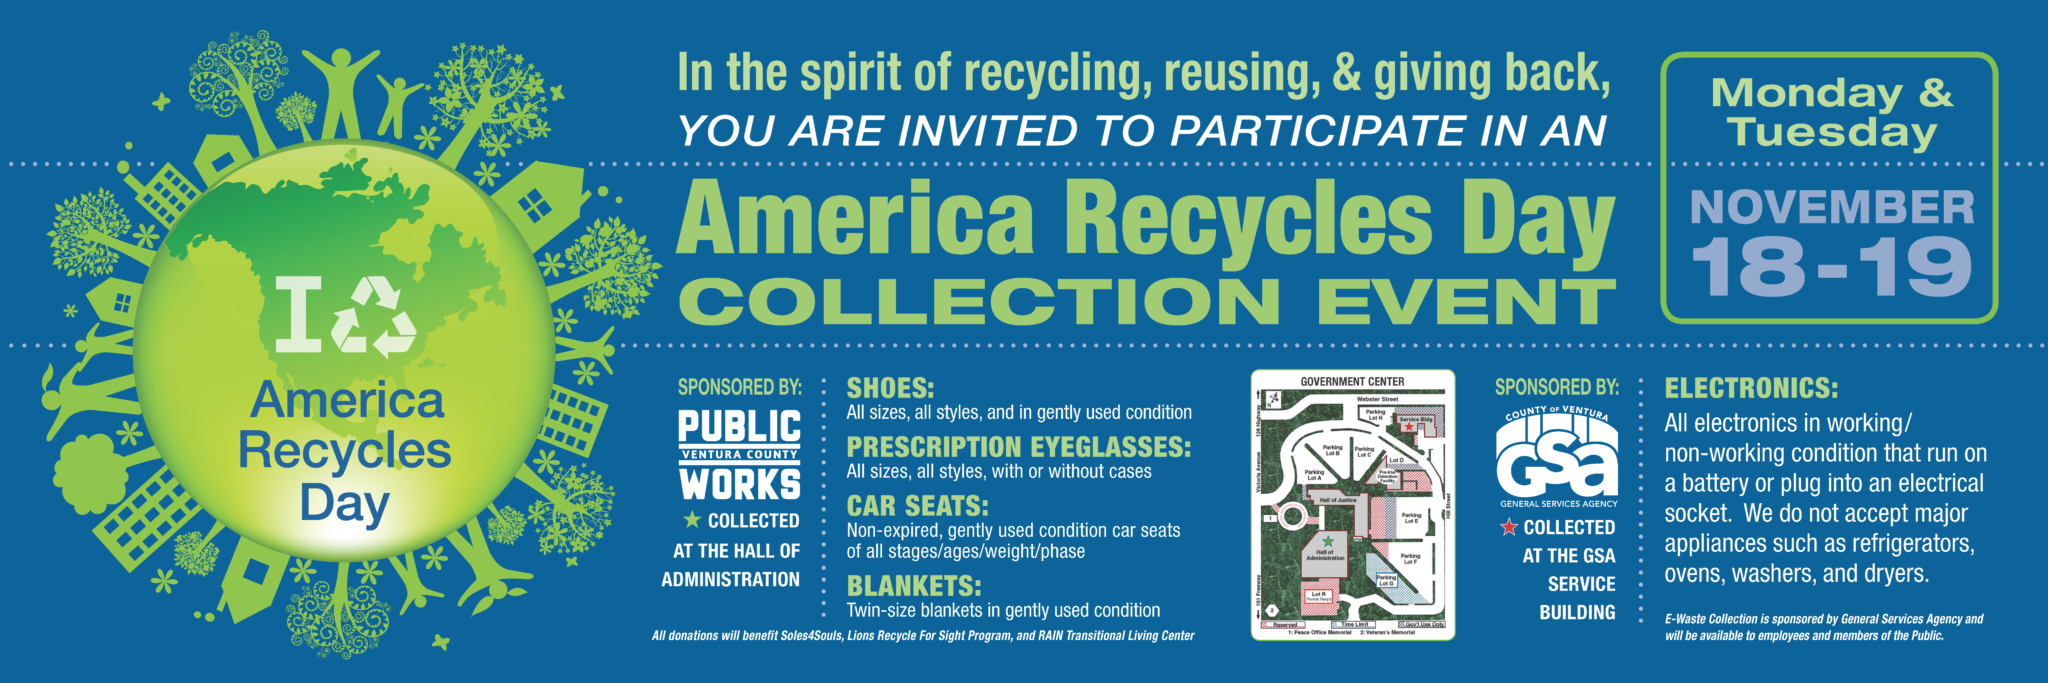 America Recycles Day Banner 10.29.19